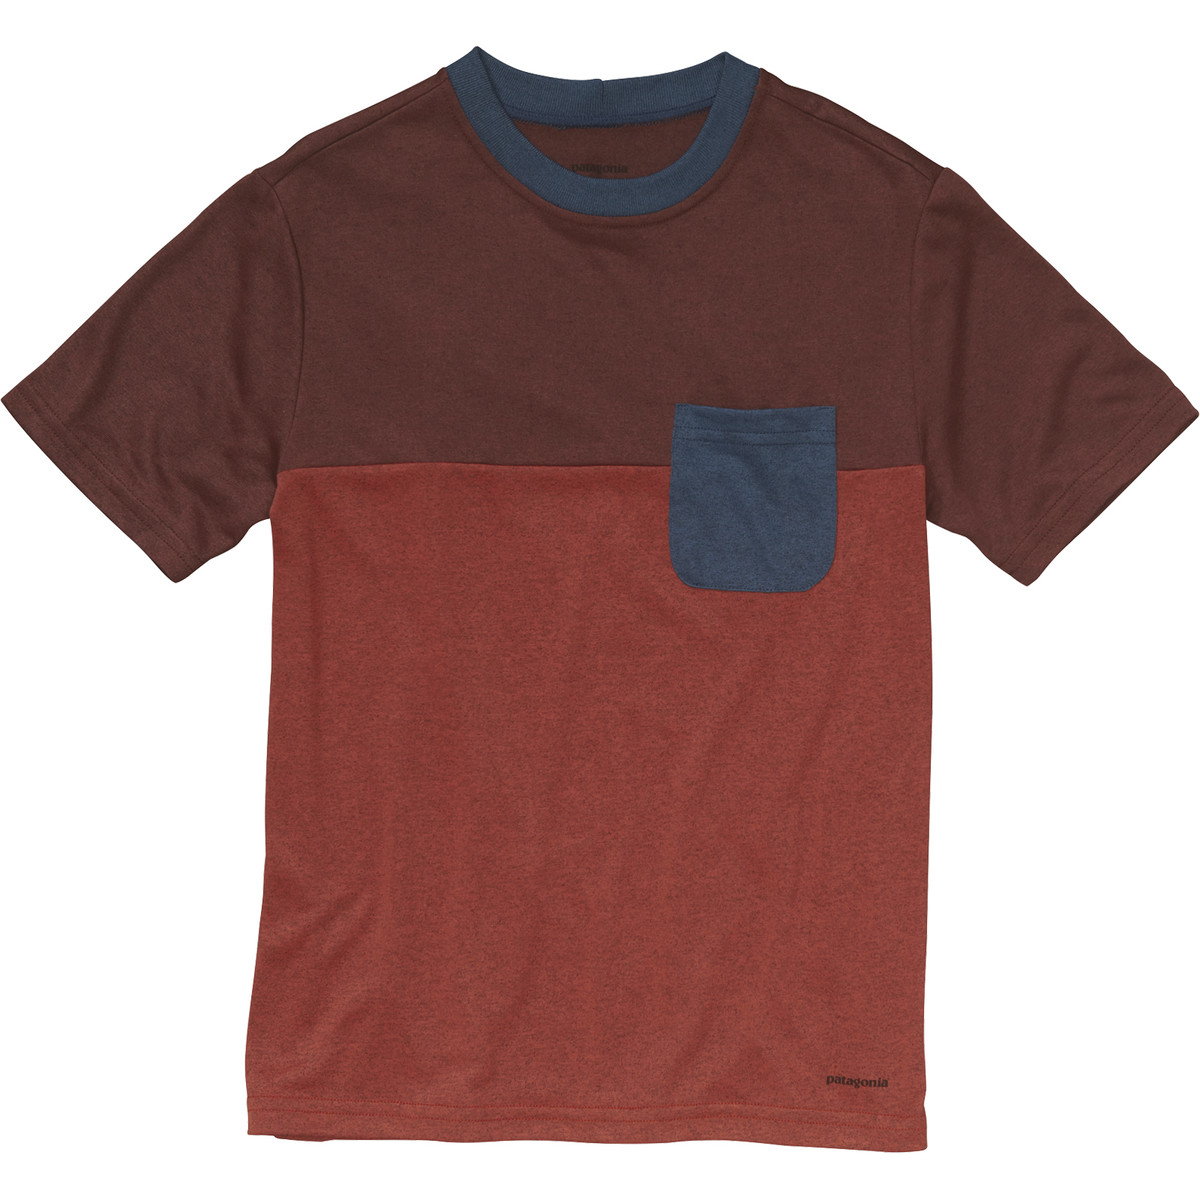 Patagonia Polarized Colorblock Tee